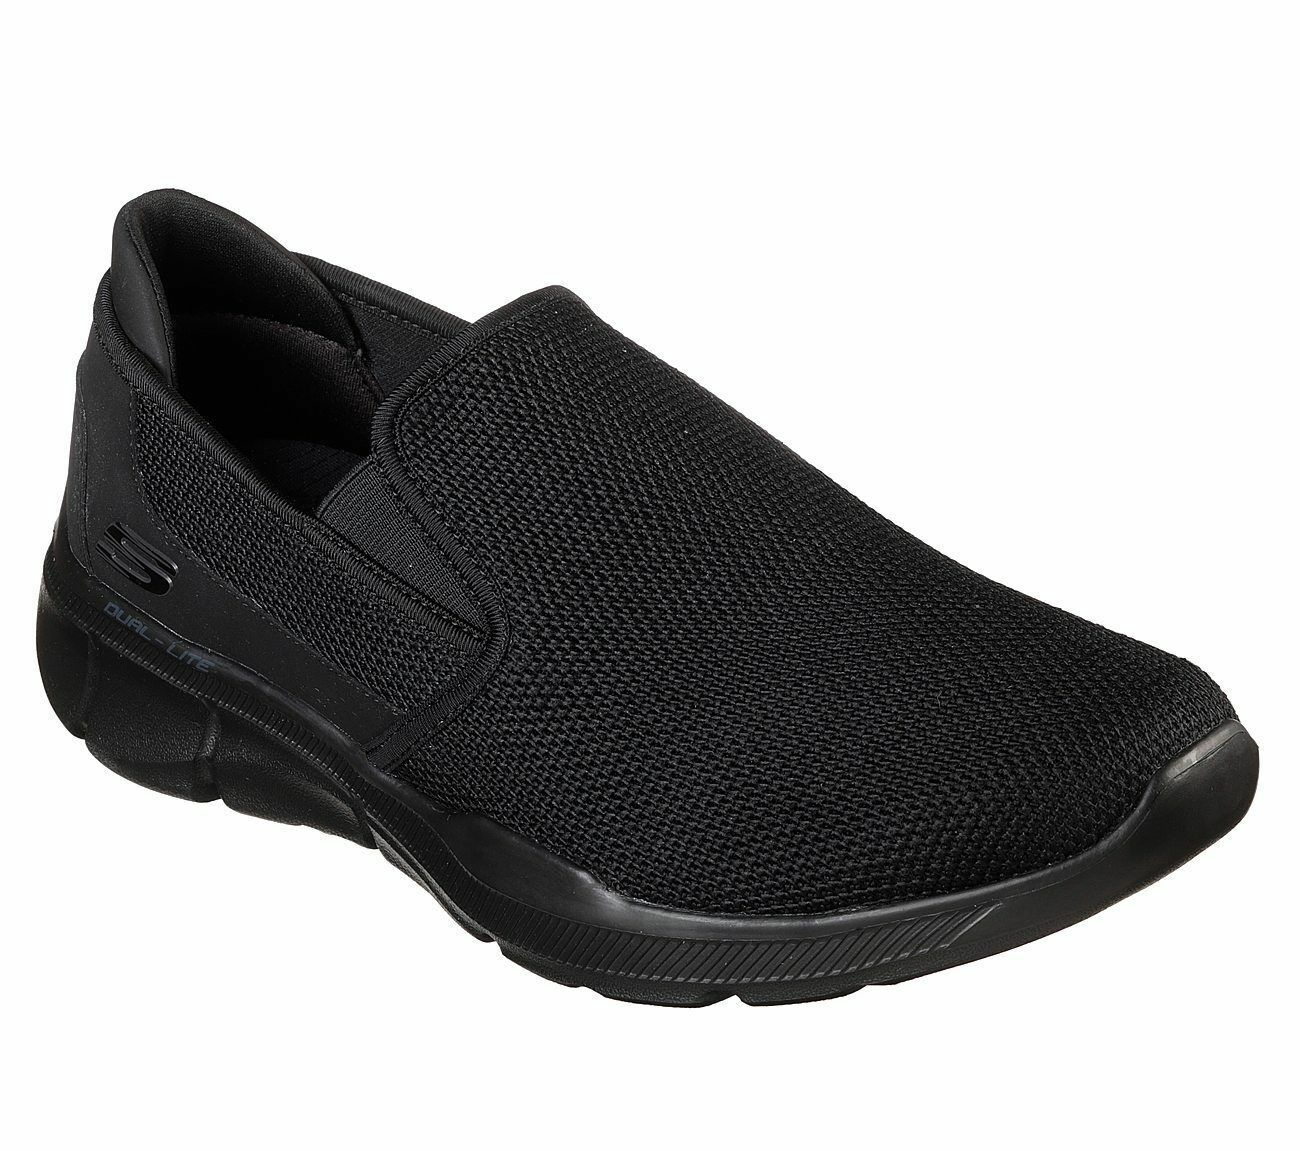 52937 EWW Extra Wide BBK Black Skechers shoe Men Memory Foam Slip On Casual Soft